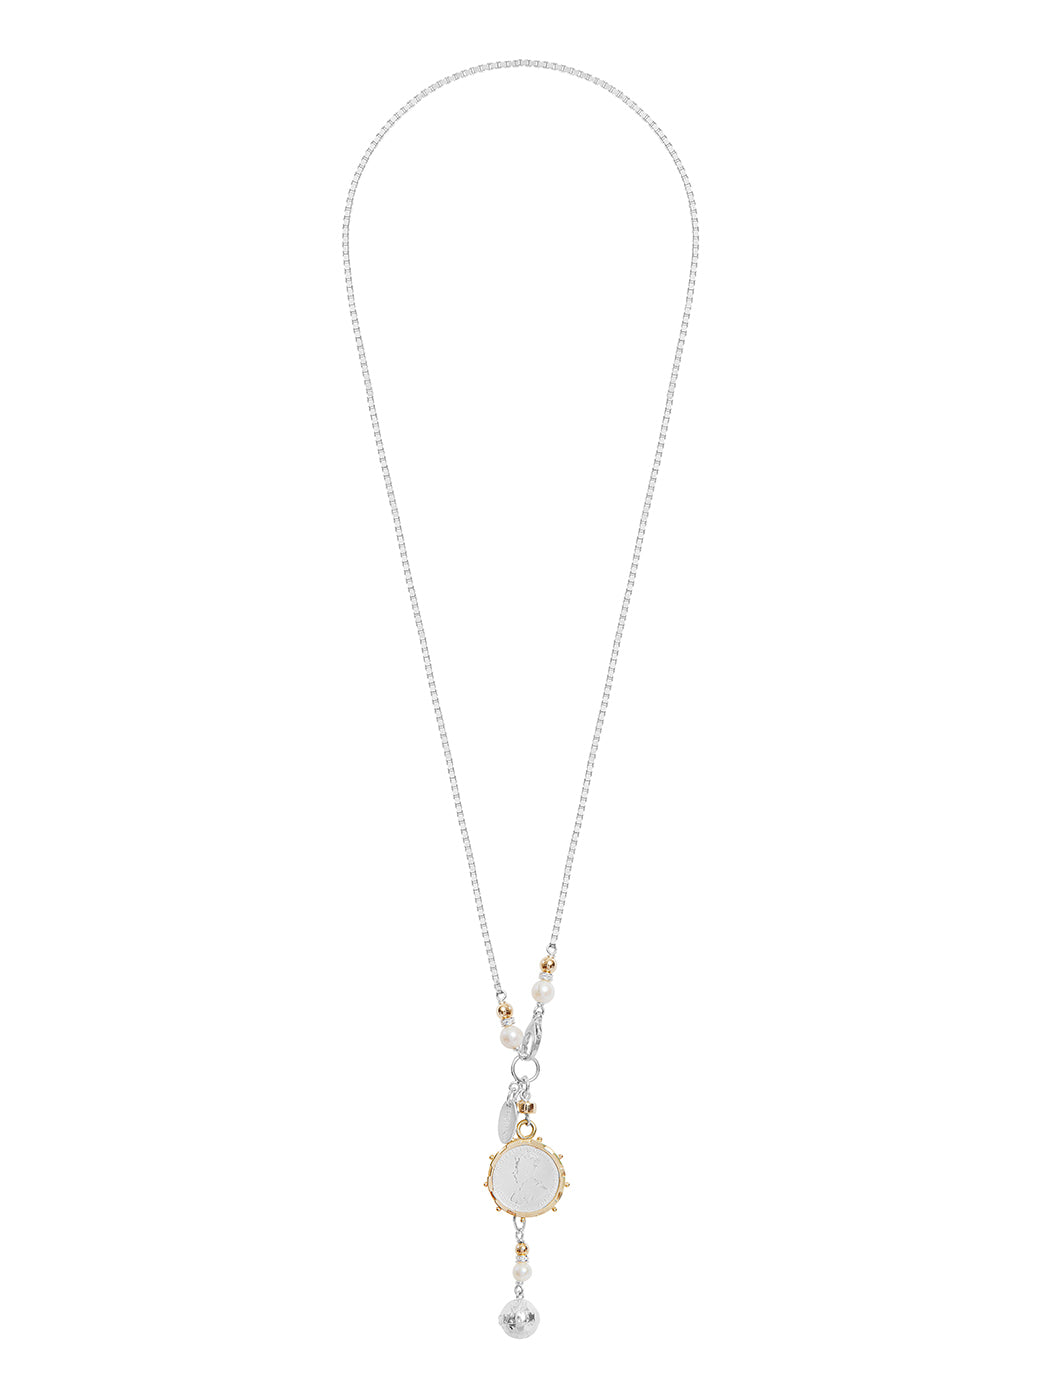 Fiorina Jewellery Gold Encased Jupiter Necklace Pearl and Gold